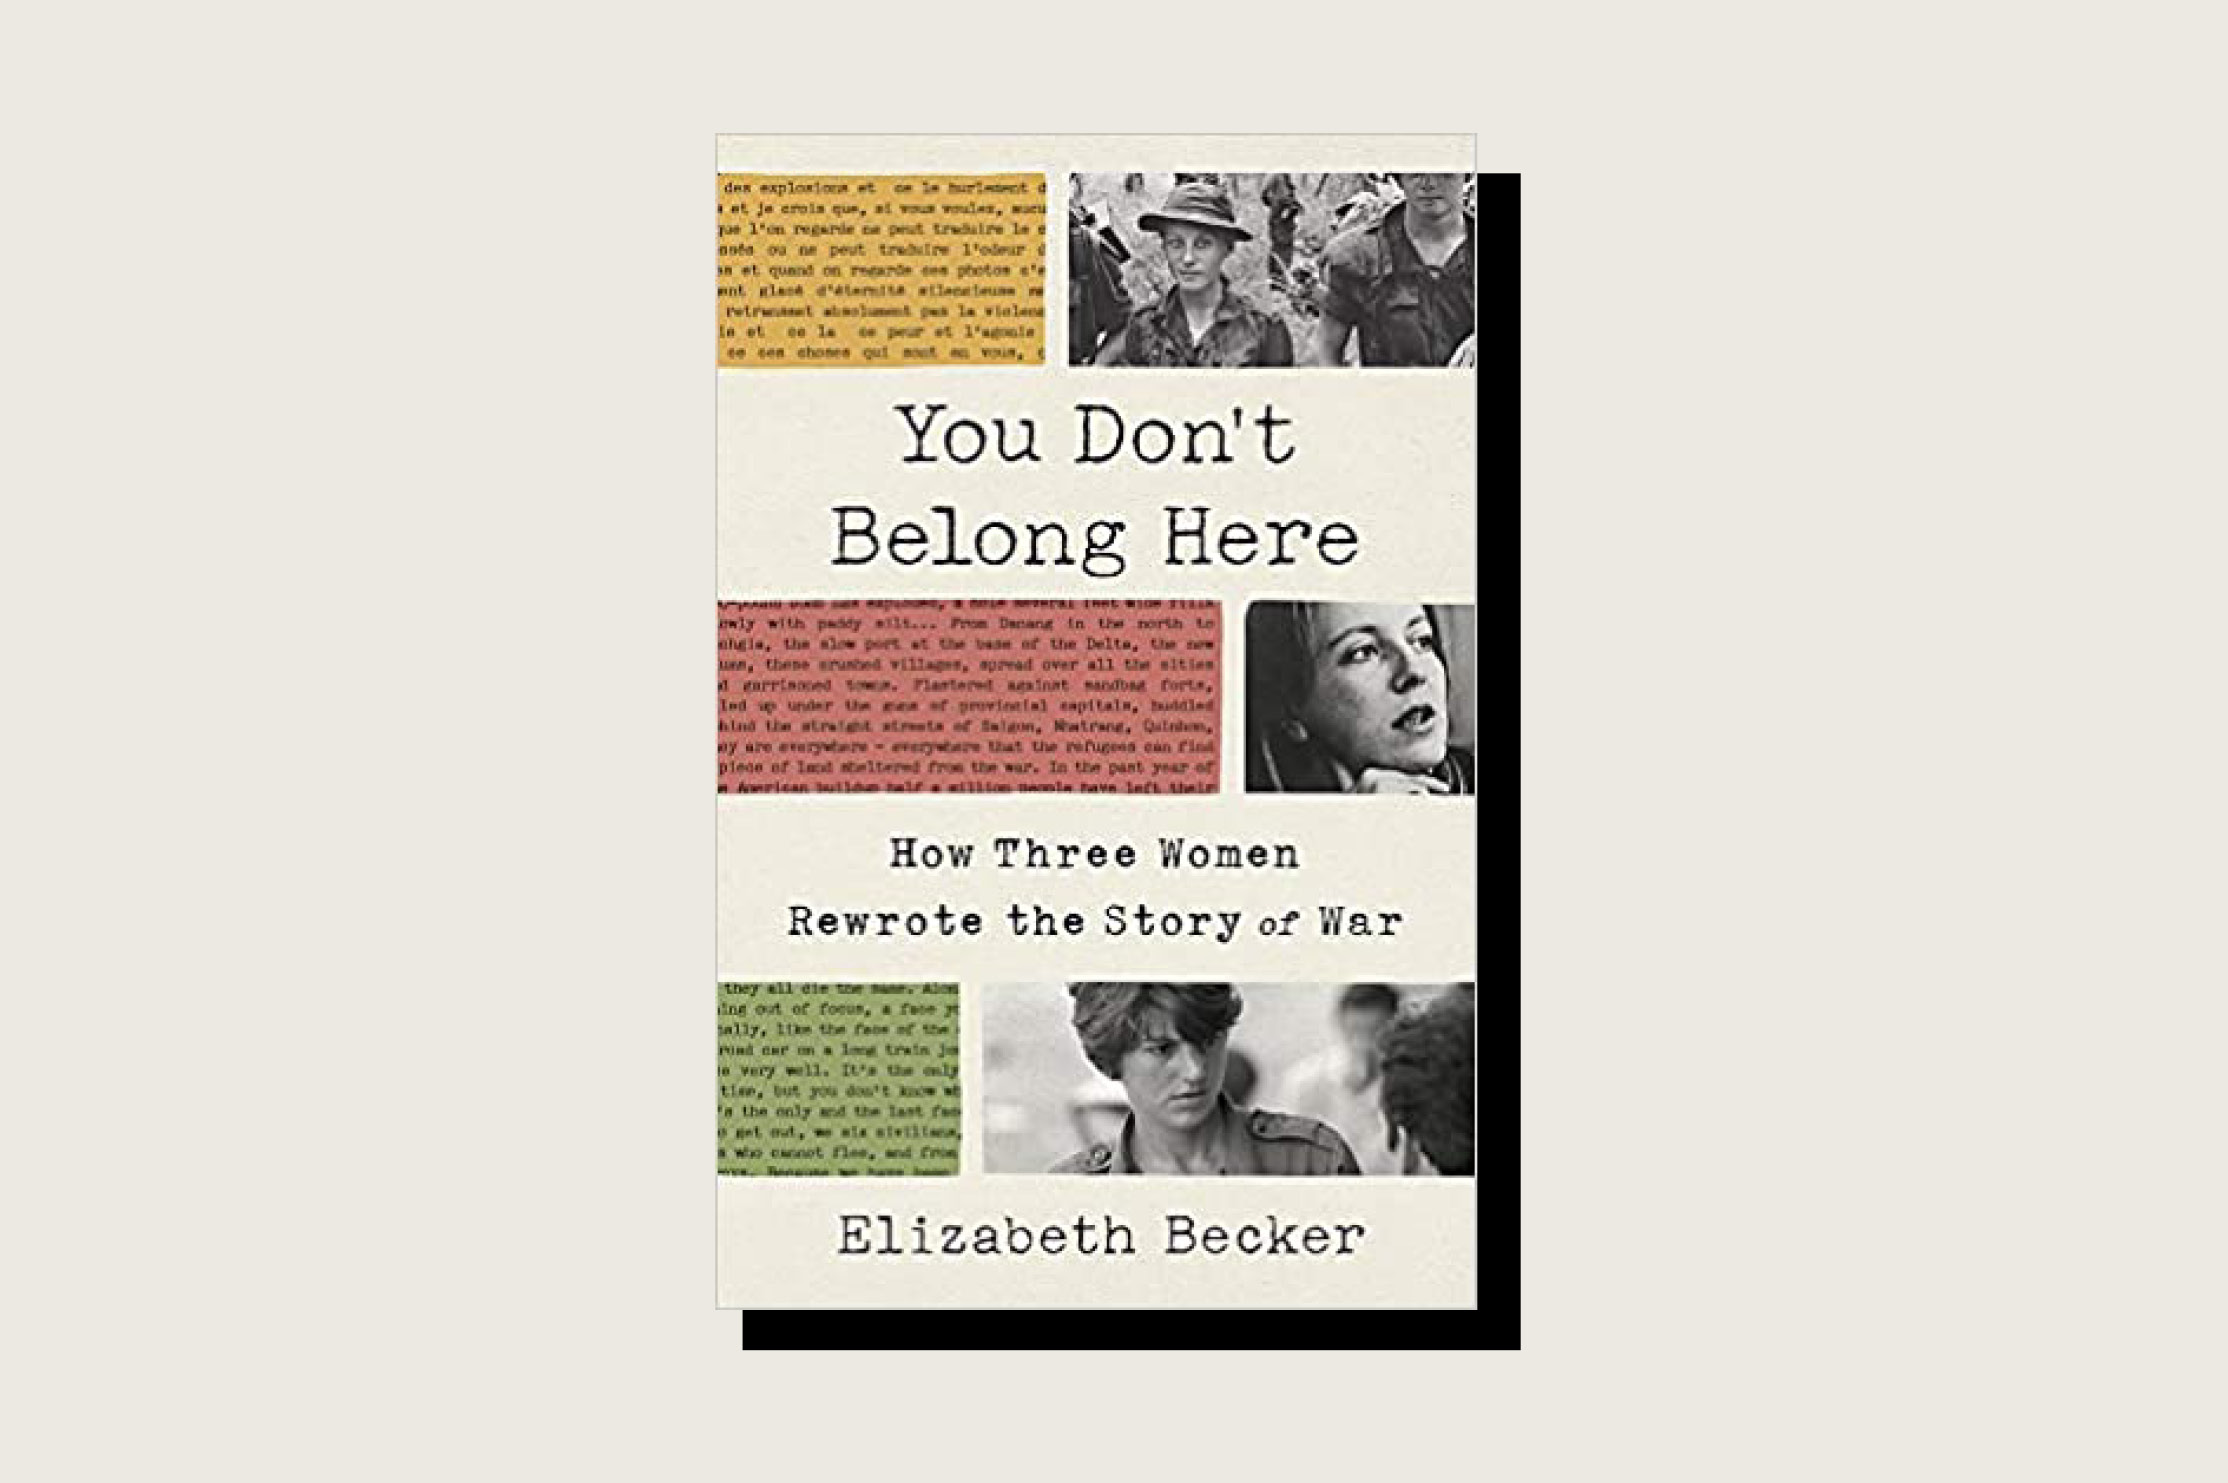 You Don't Belong Here:How Three Women Rewrote the Story of War, Elizabeth Becker, Hatchette Book Group, 320 pp., .99, February 2021